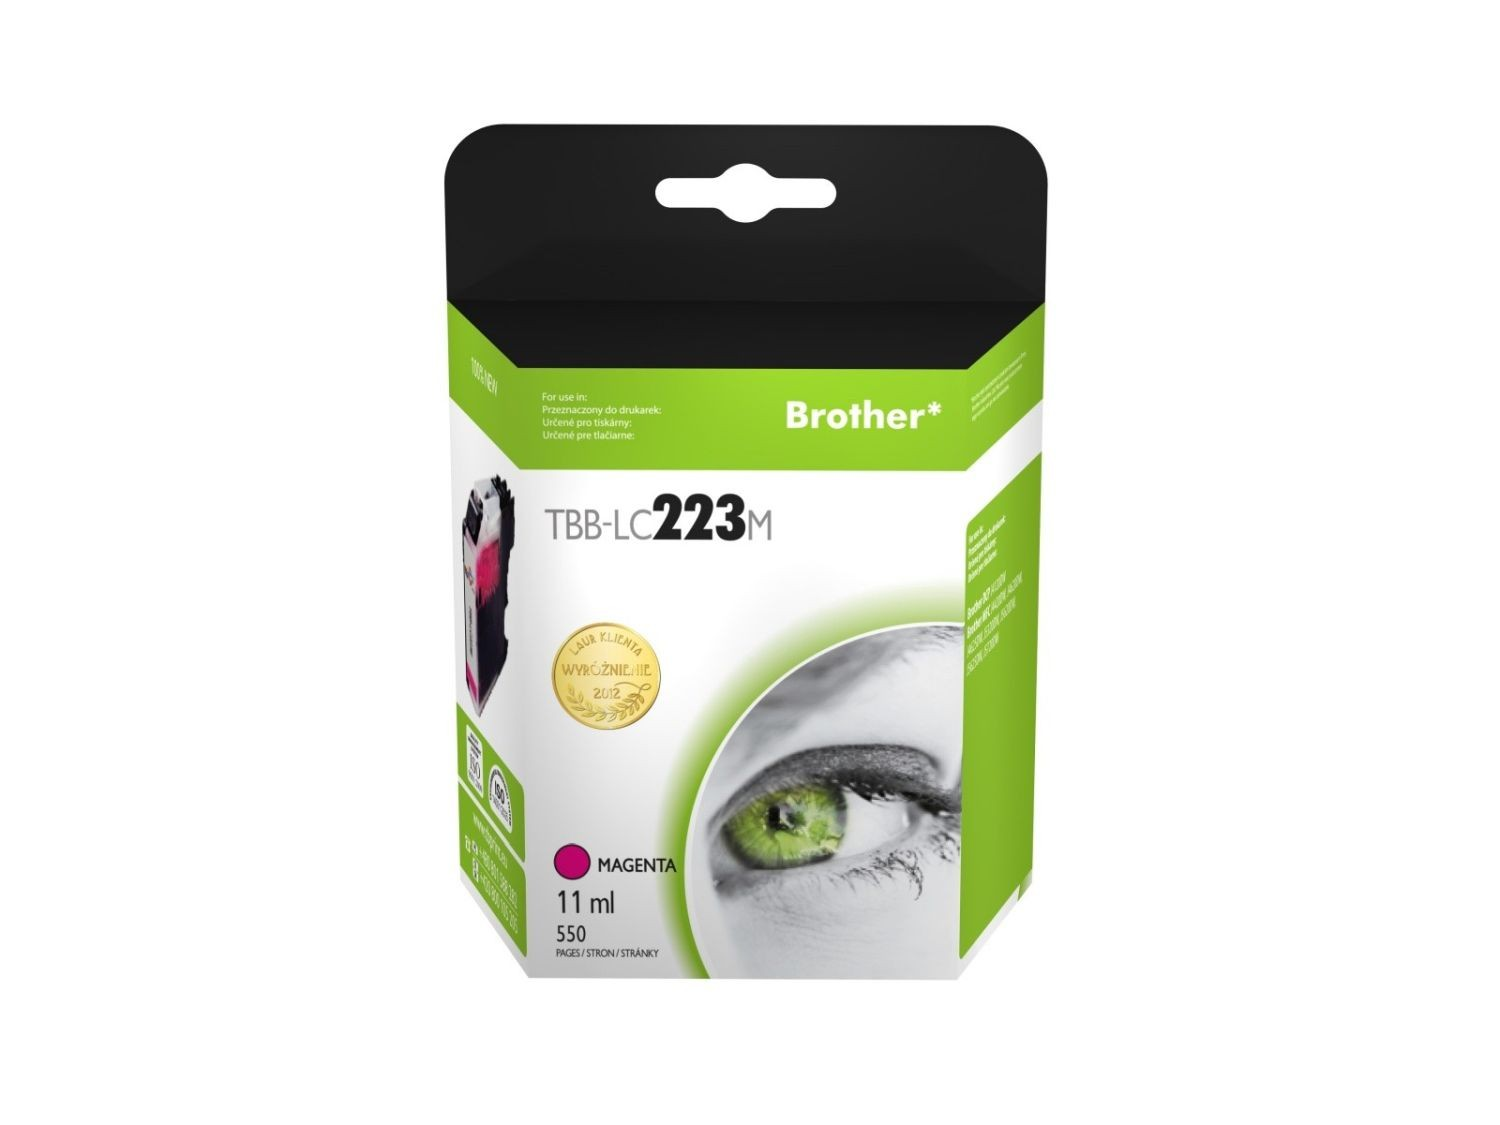 TB Print Tusz do Brother LC223 TBB-LC223M MA